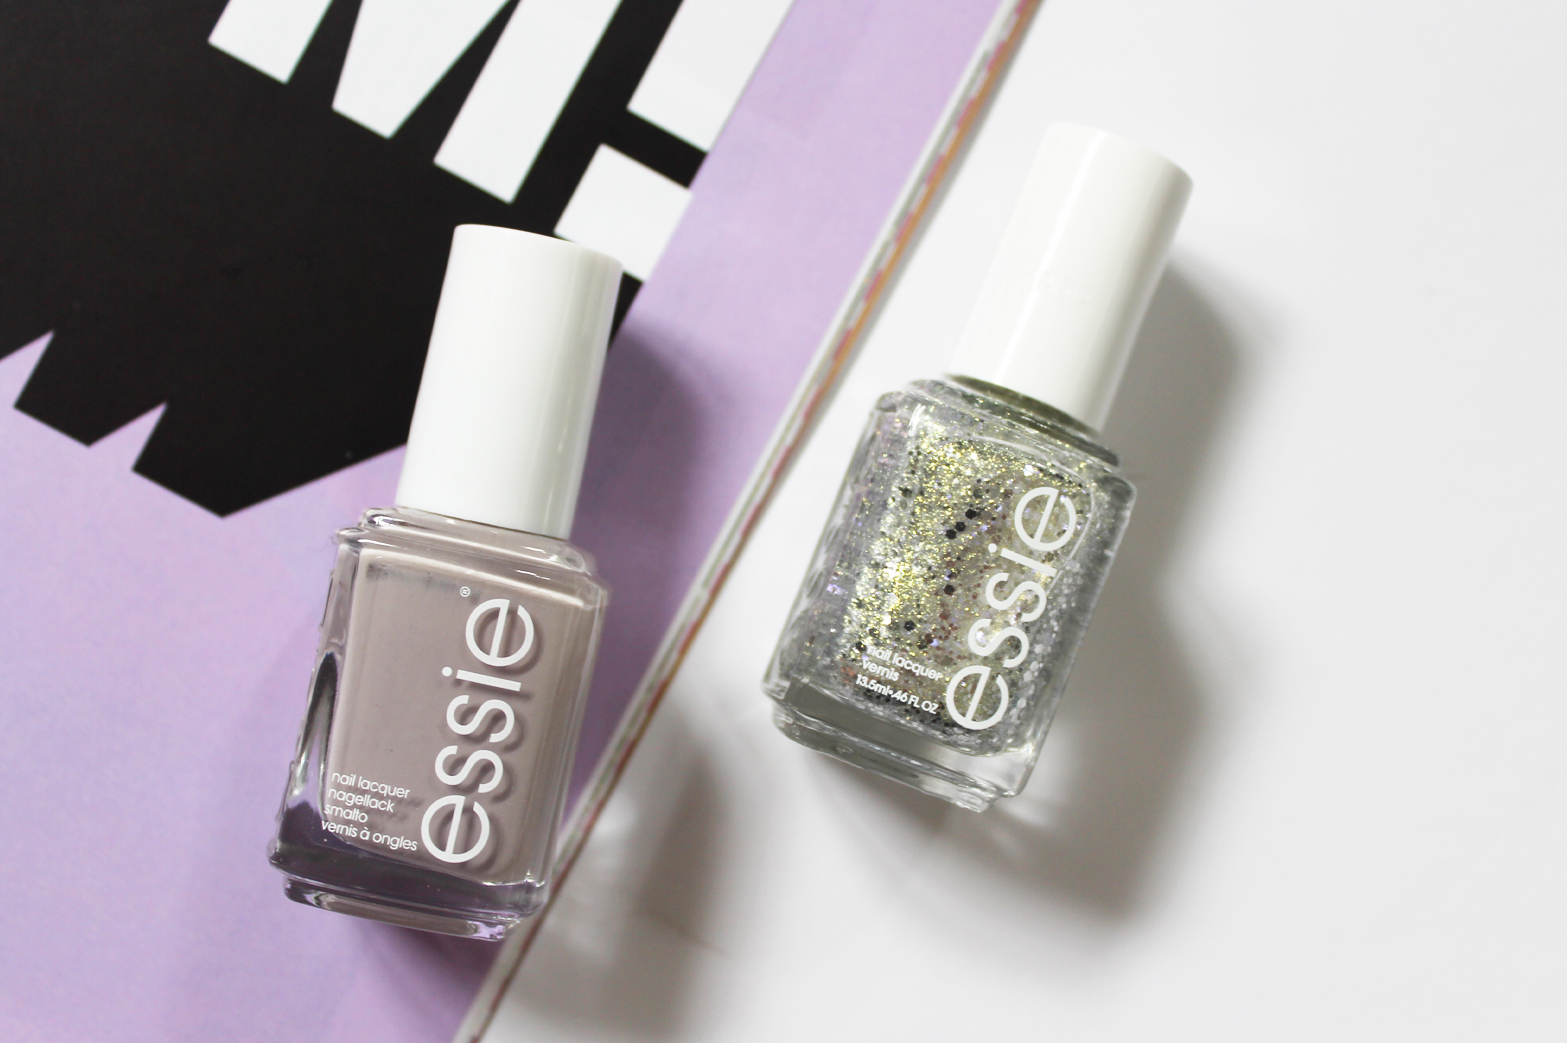 NOTD | Essie Take It Outside + Hors d'Oeuvres - CassandraMyee